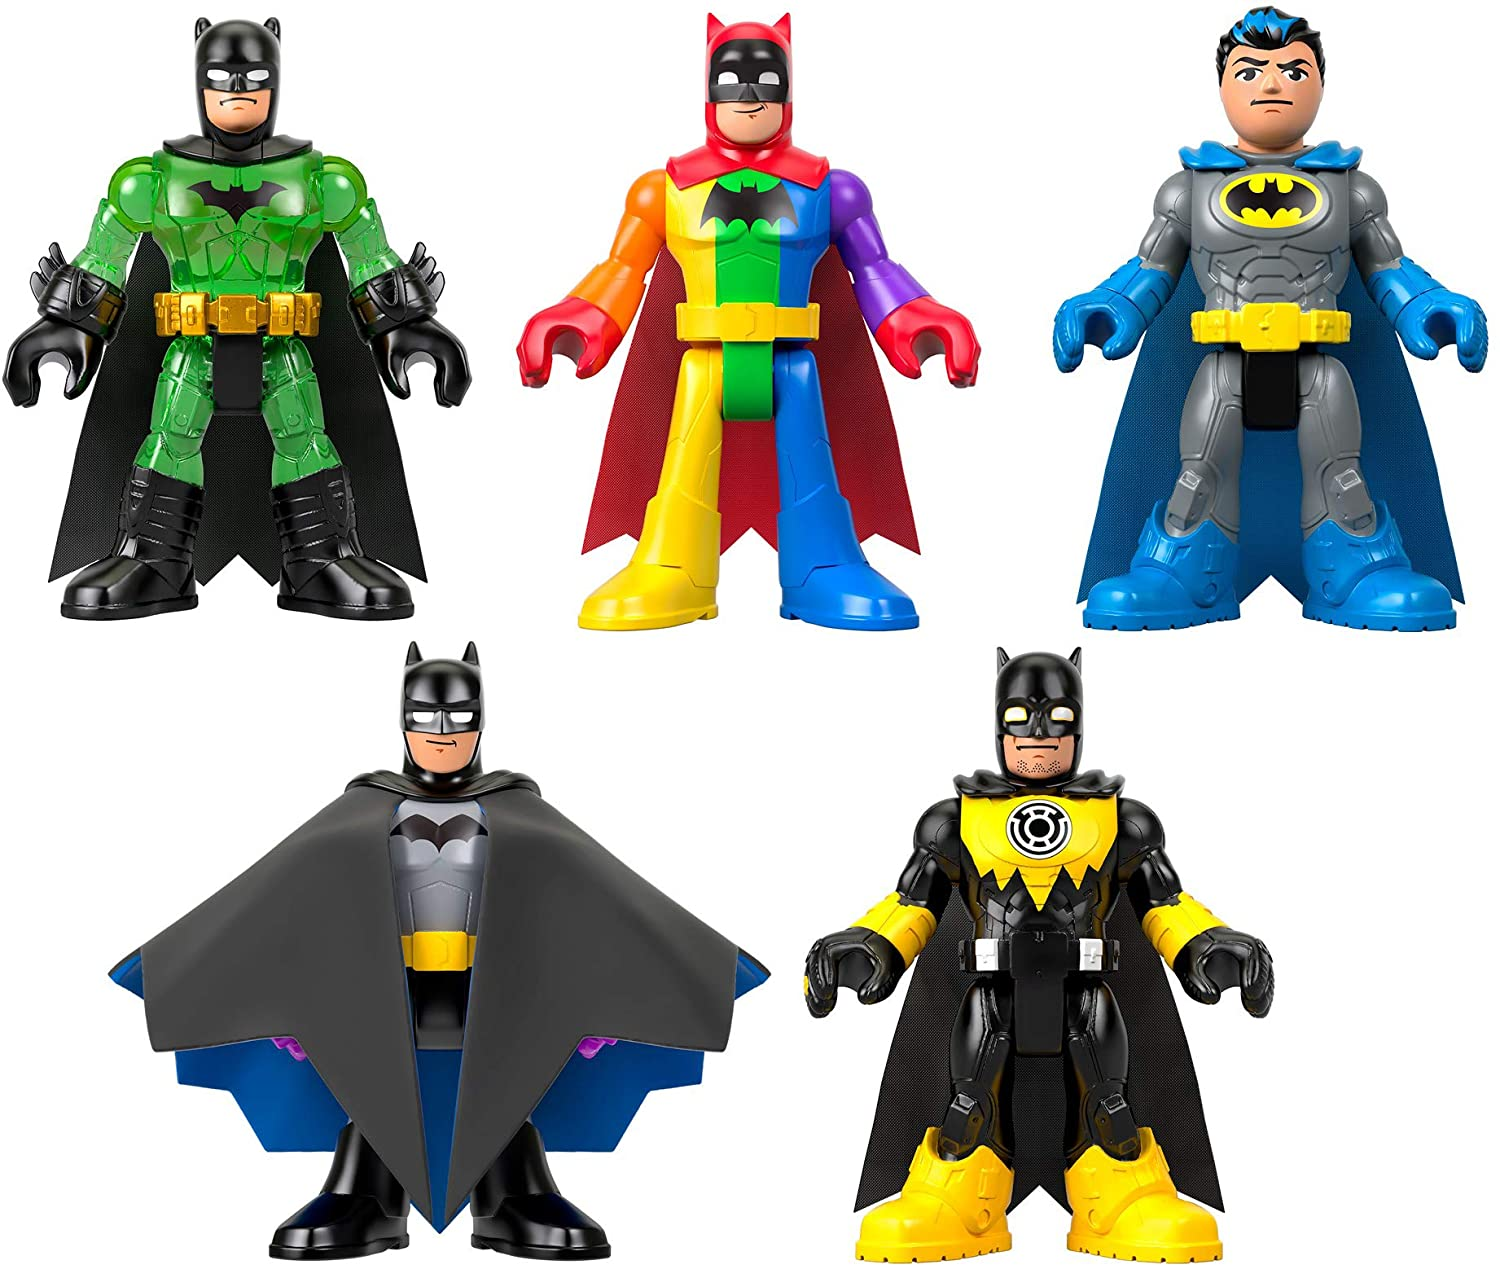 Fisher-Price Imaginext DC Super Friends Batman 80th Anniversary Collection